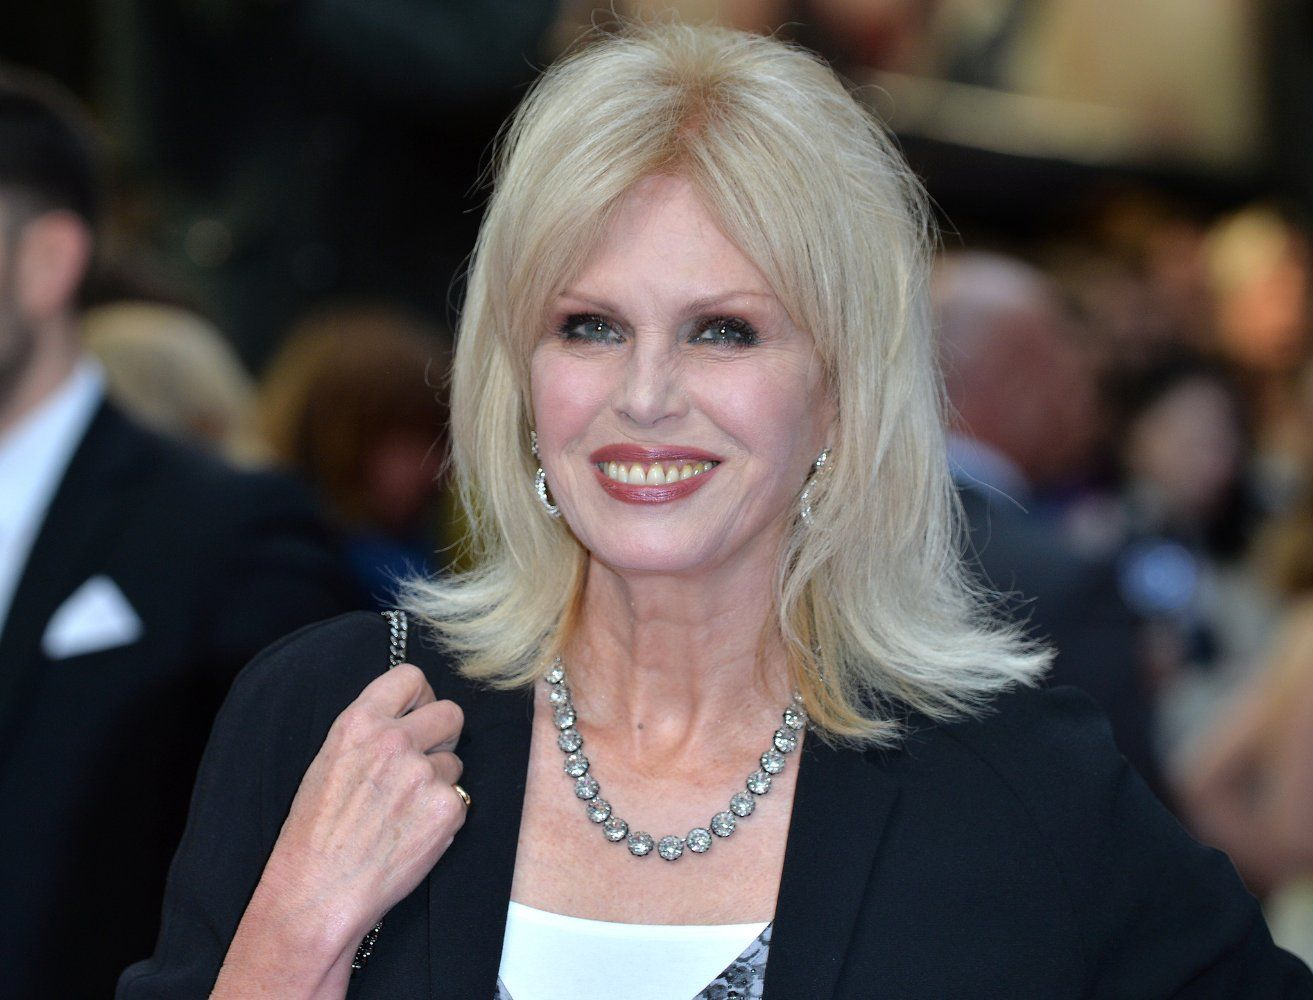 Joanna Lumley (born 1946 (born in Srinagar, India)